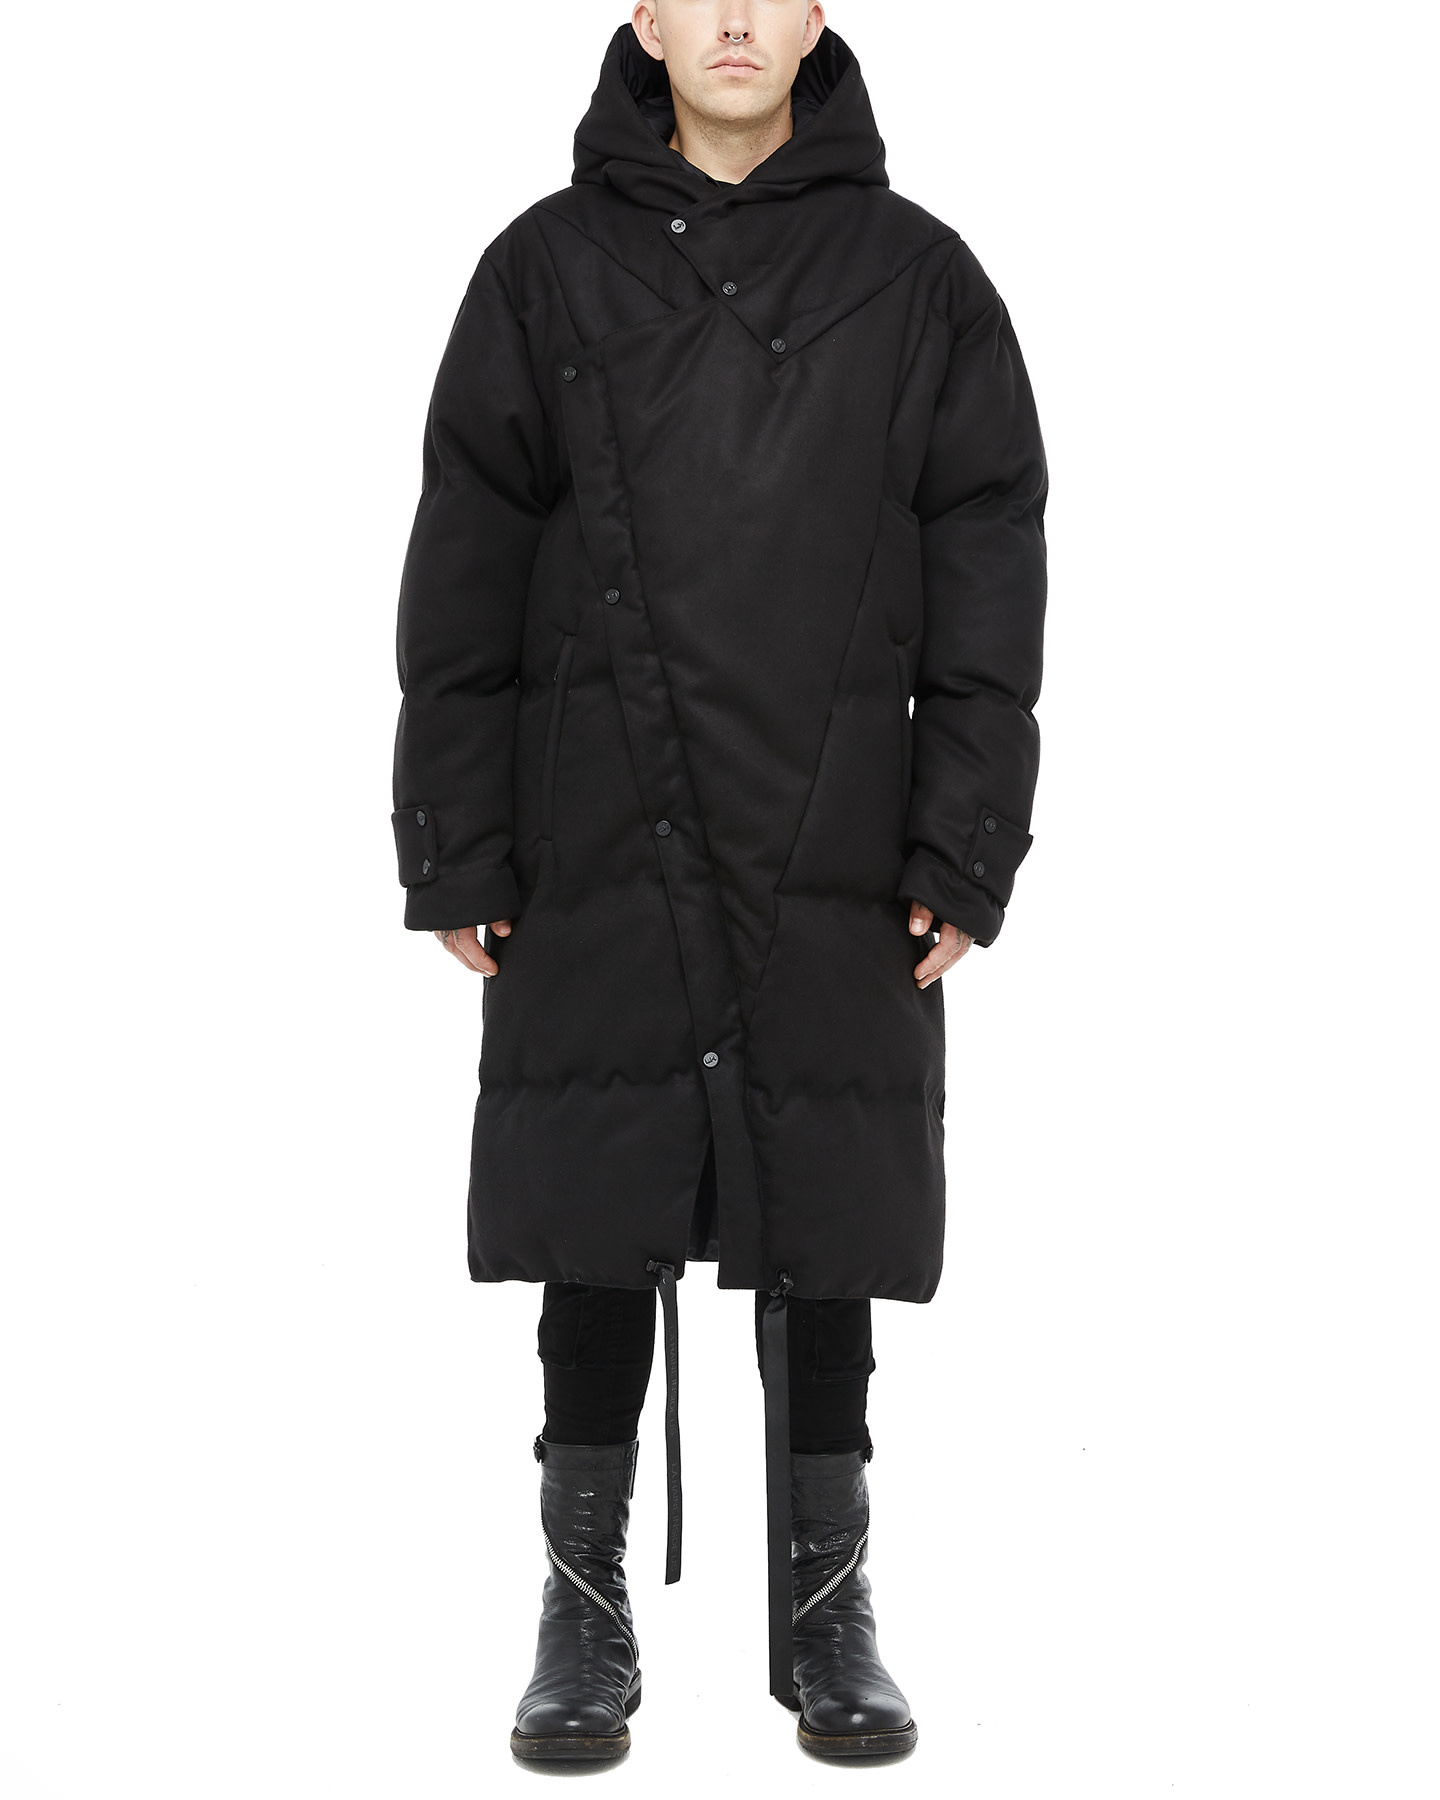 HOODED WRAP FELTED PUFFER COAT